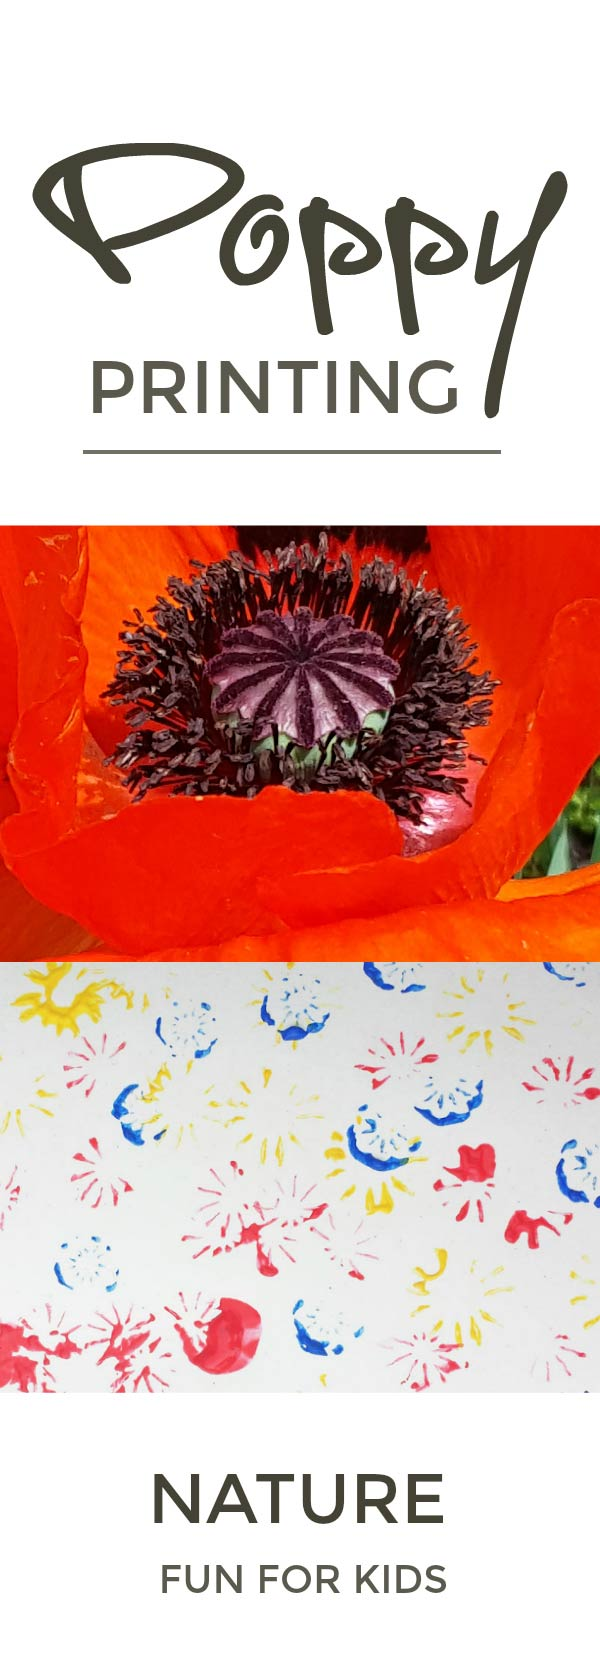 Poppy seed head printing - a lovely simple nature craft for kids that helps them explore natural shapes plus pollination and the lifecycle of flowers and seeds #flowers #poppies #nature #naturelover #printing #painting #naturecrafts #plantscience #lifecycle #seeds